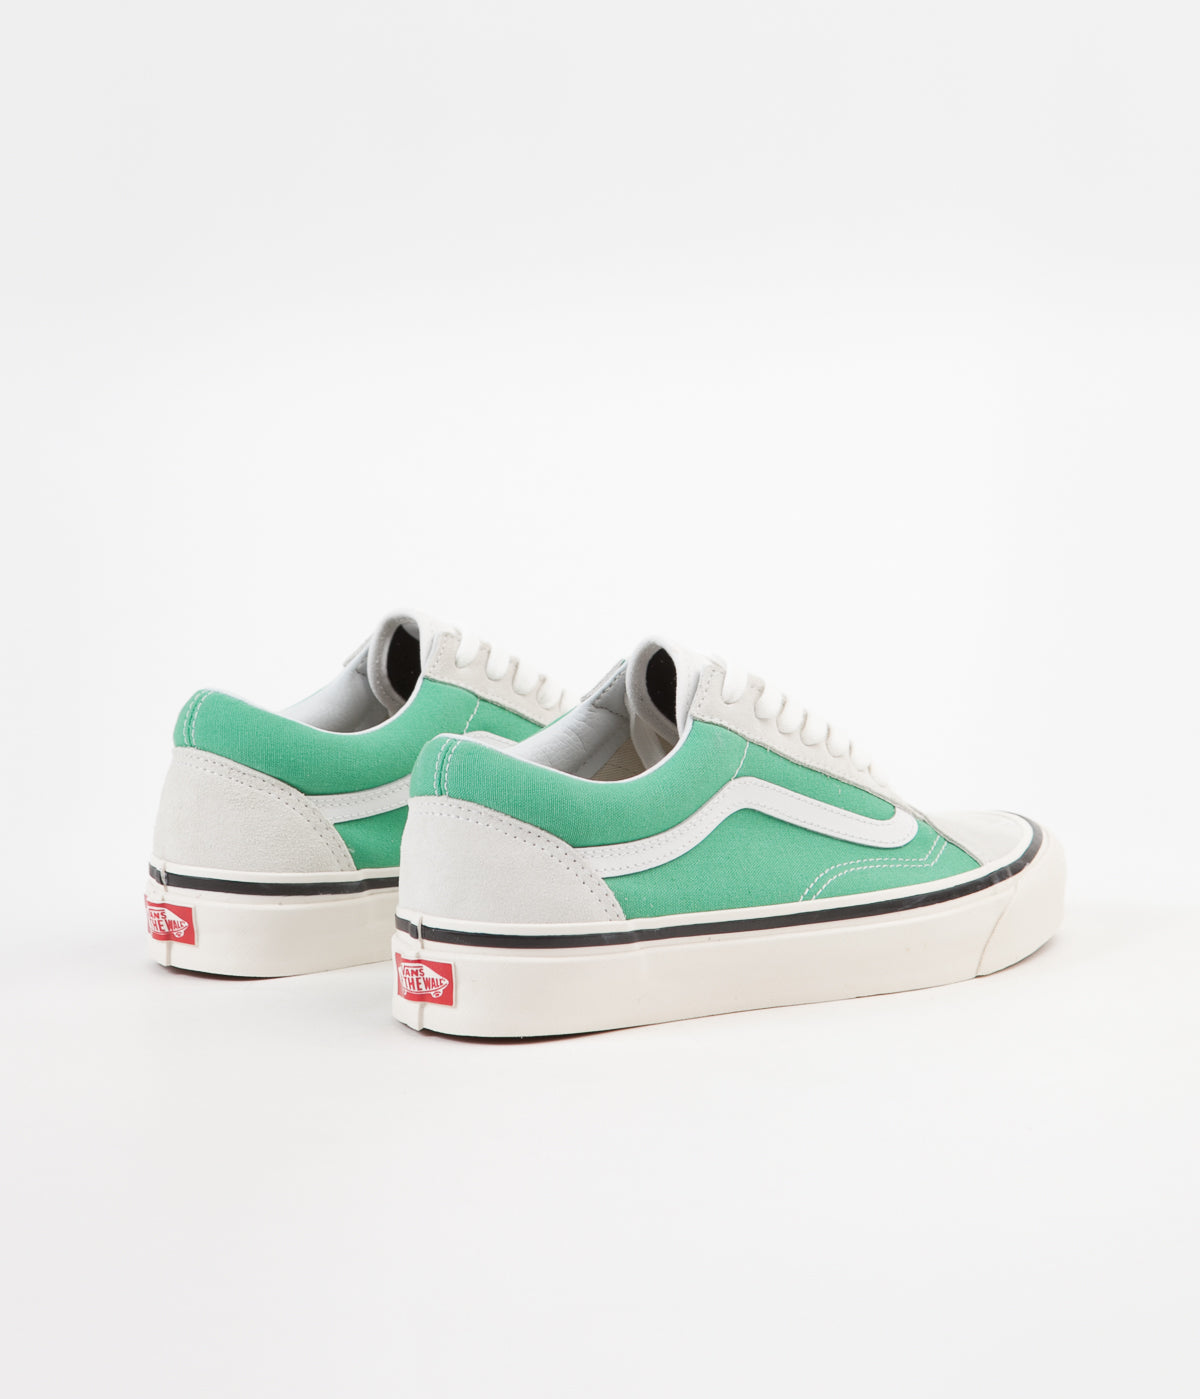 Vans Old Skool 36 DX Anaheim Factory OG Jade Sneaker Bar